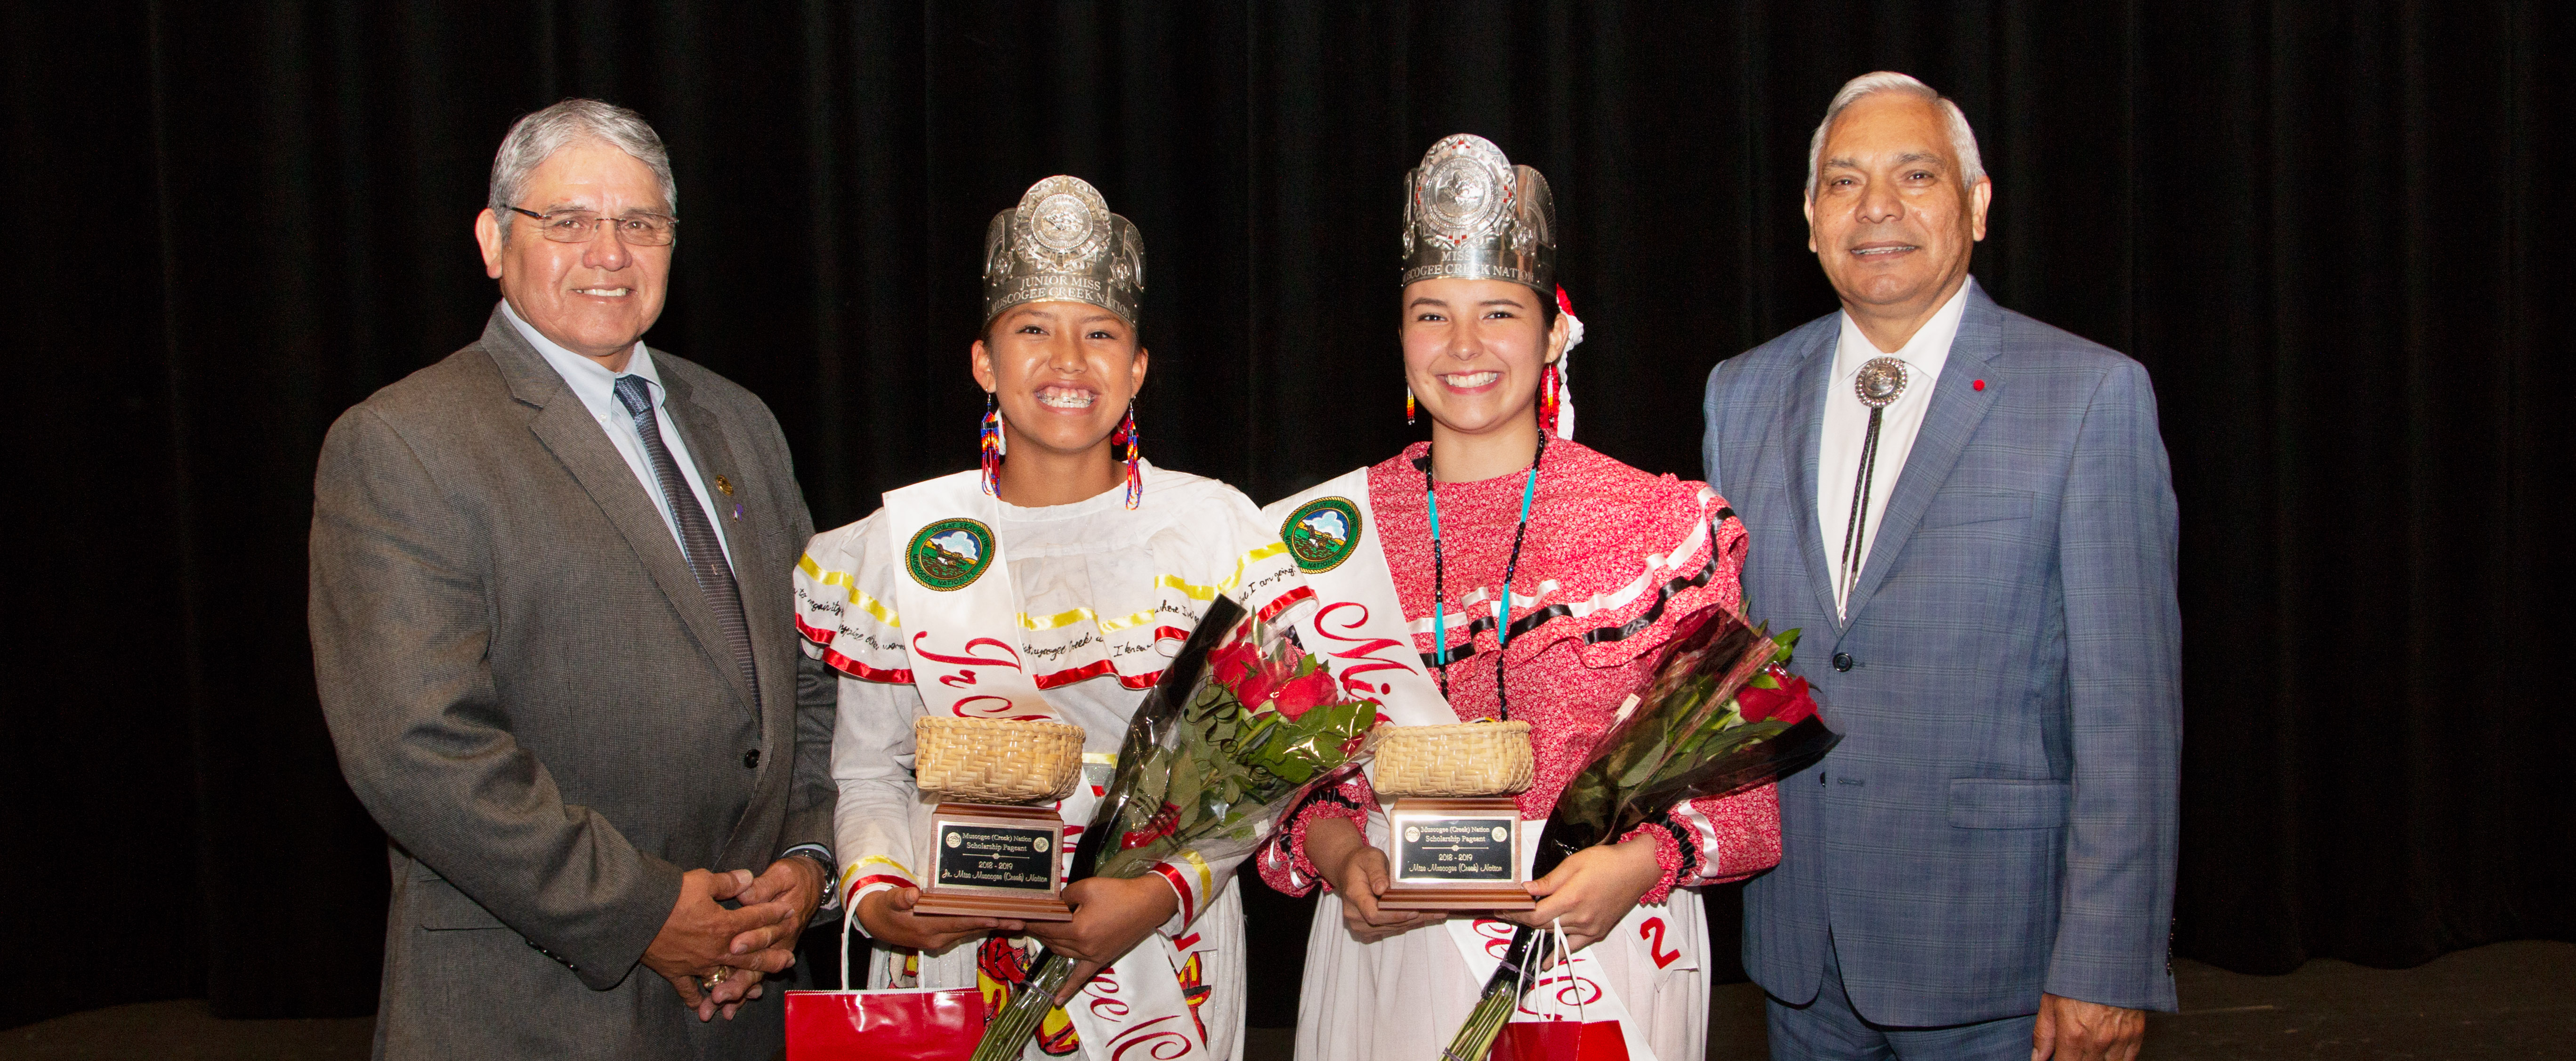 Muscogee (Creek) Nation Scholarship Pageant Names 2018-2019 Miss and Jr. Miss Muscogee (Creek) Nation